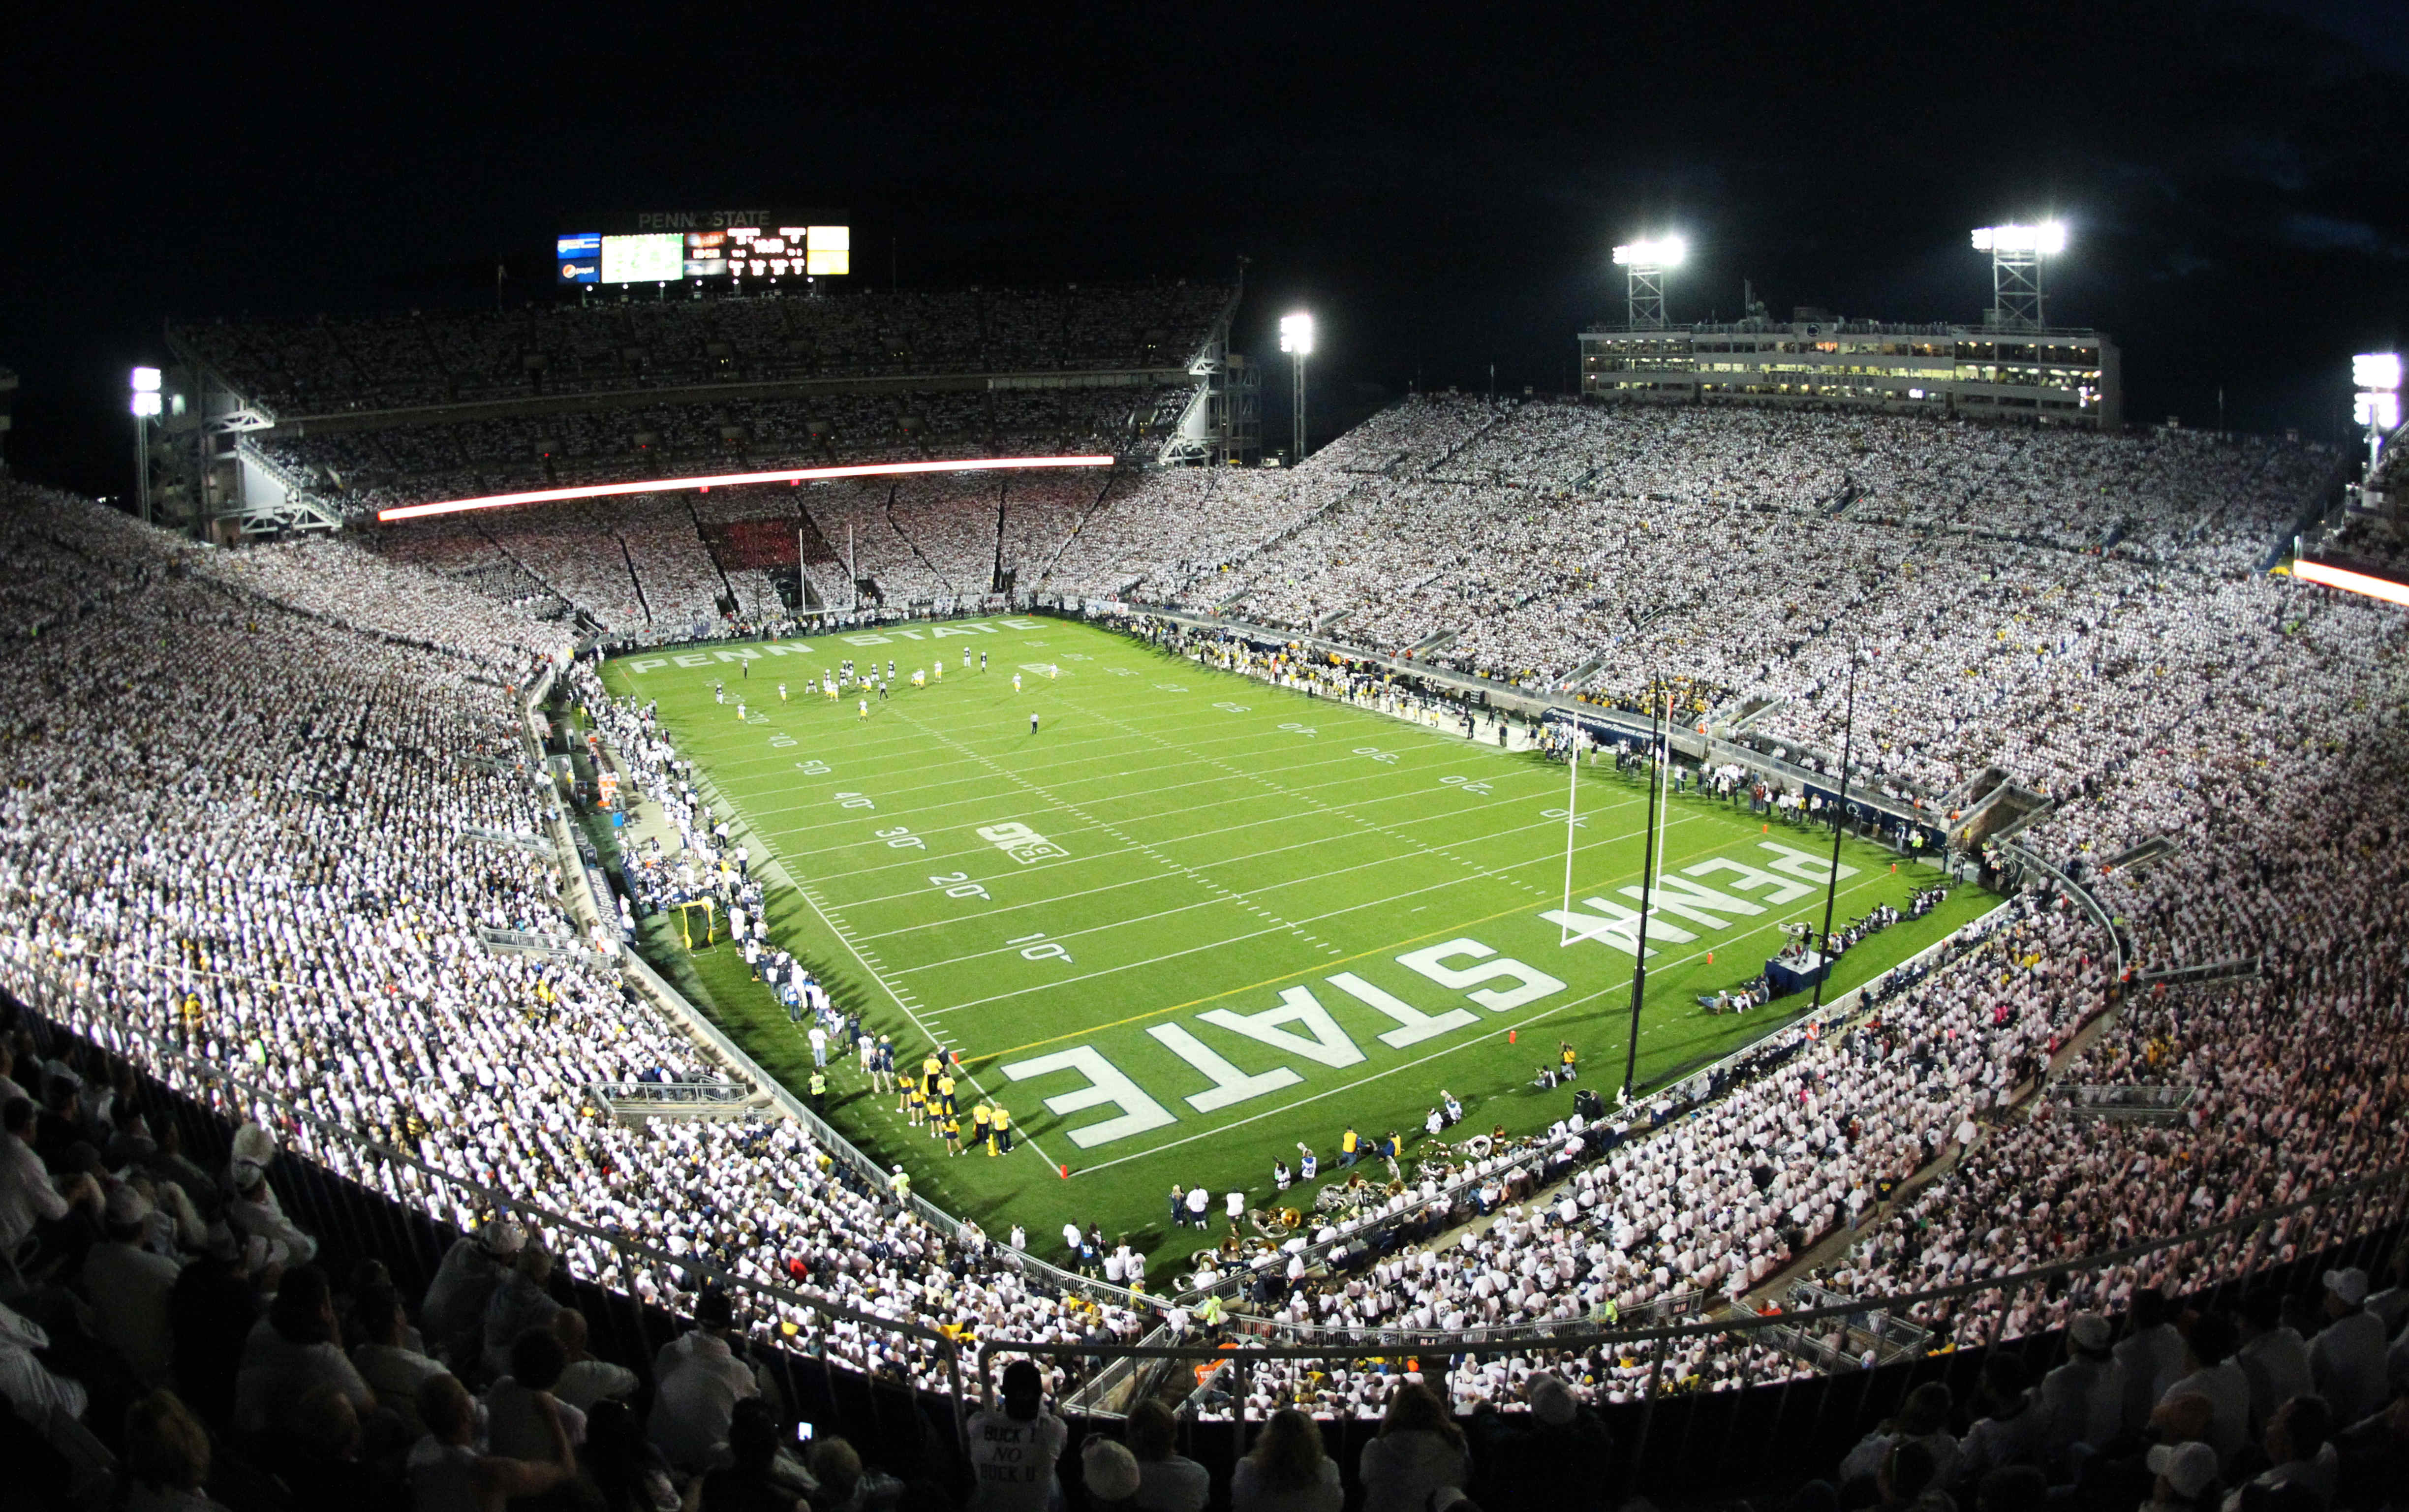 The Whiteout, one of the best traditions in college football